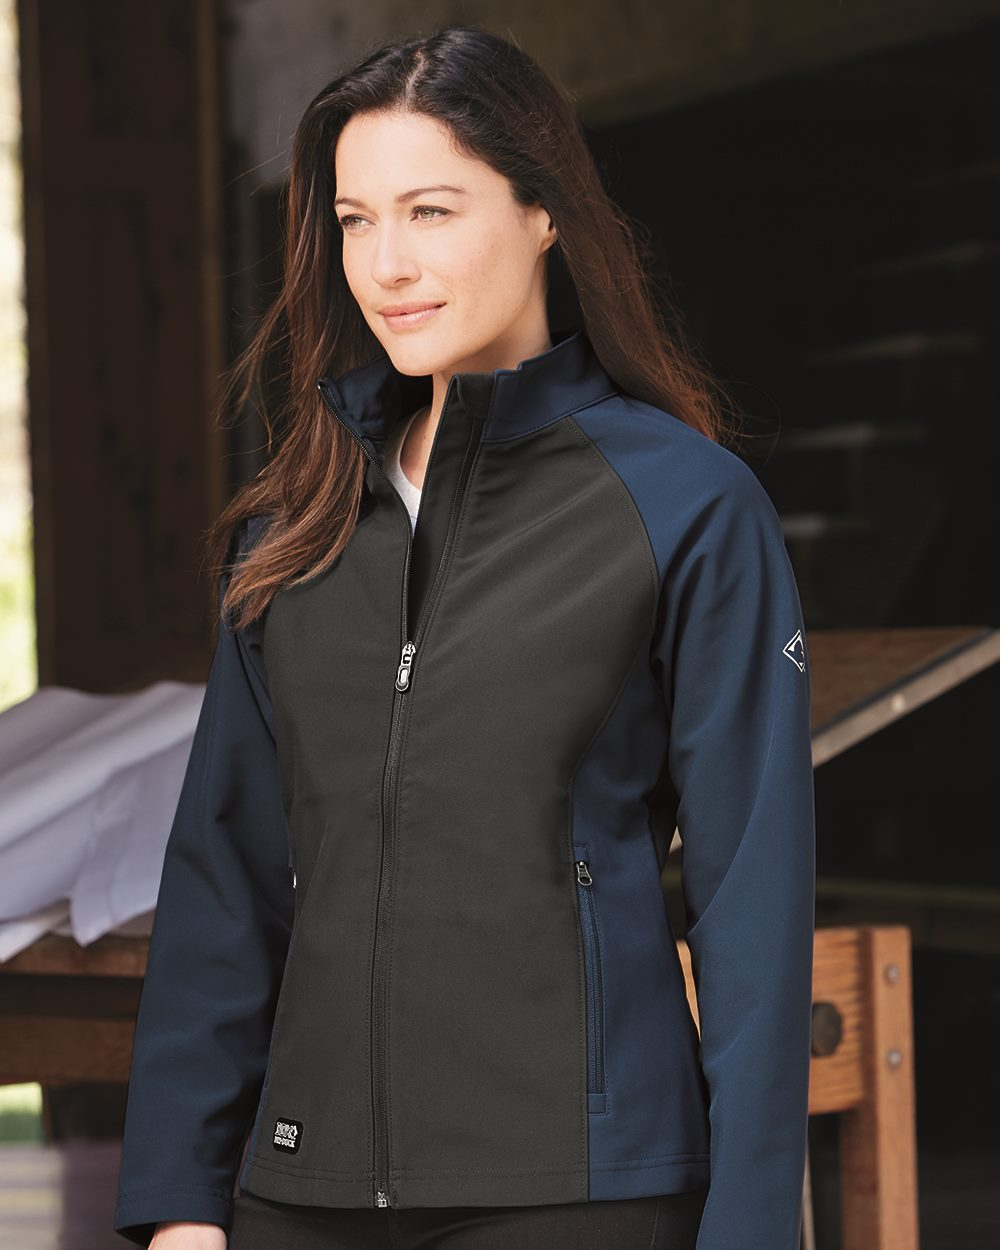 DRI DUCK 9439 - Women's Contour Soft Shell Jacket